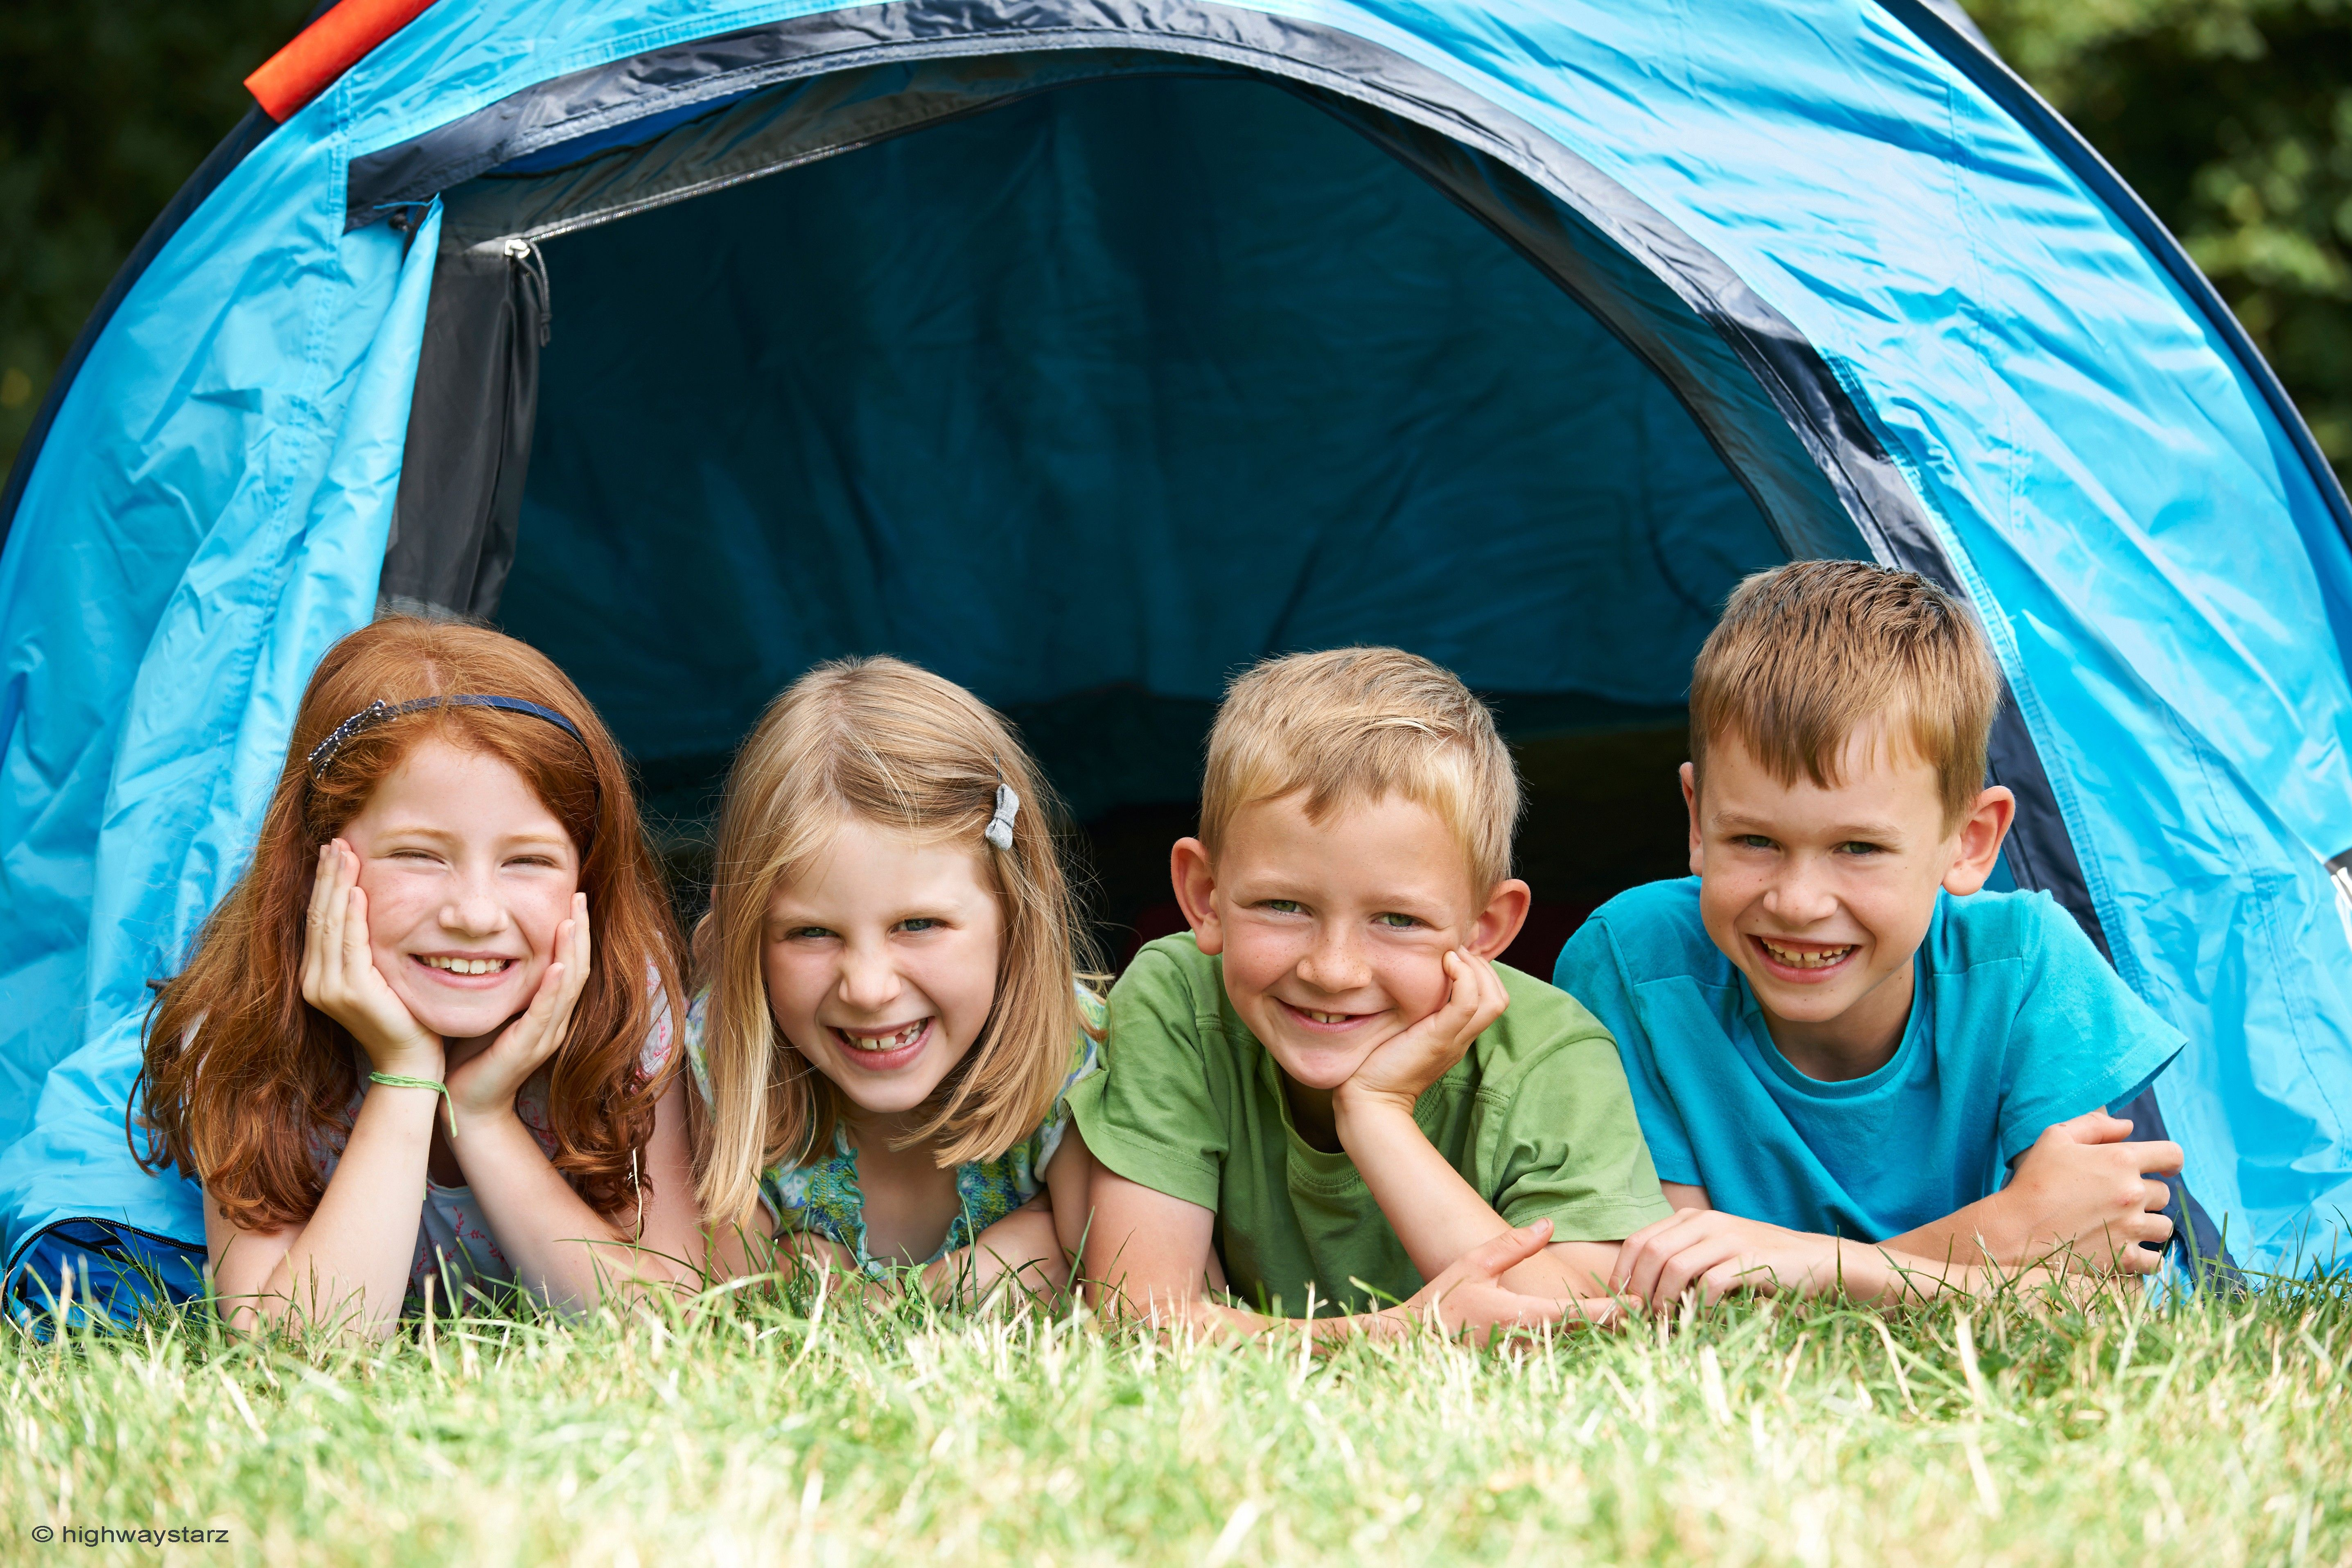 Vacation time: What has to come along to summer camp?